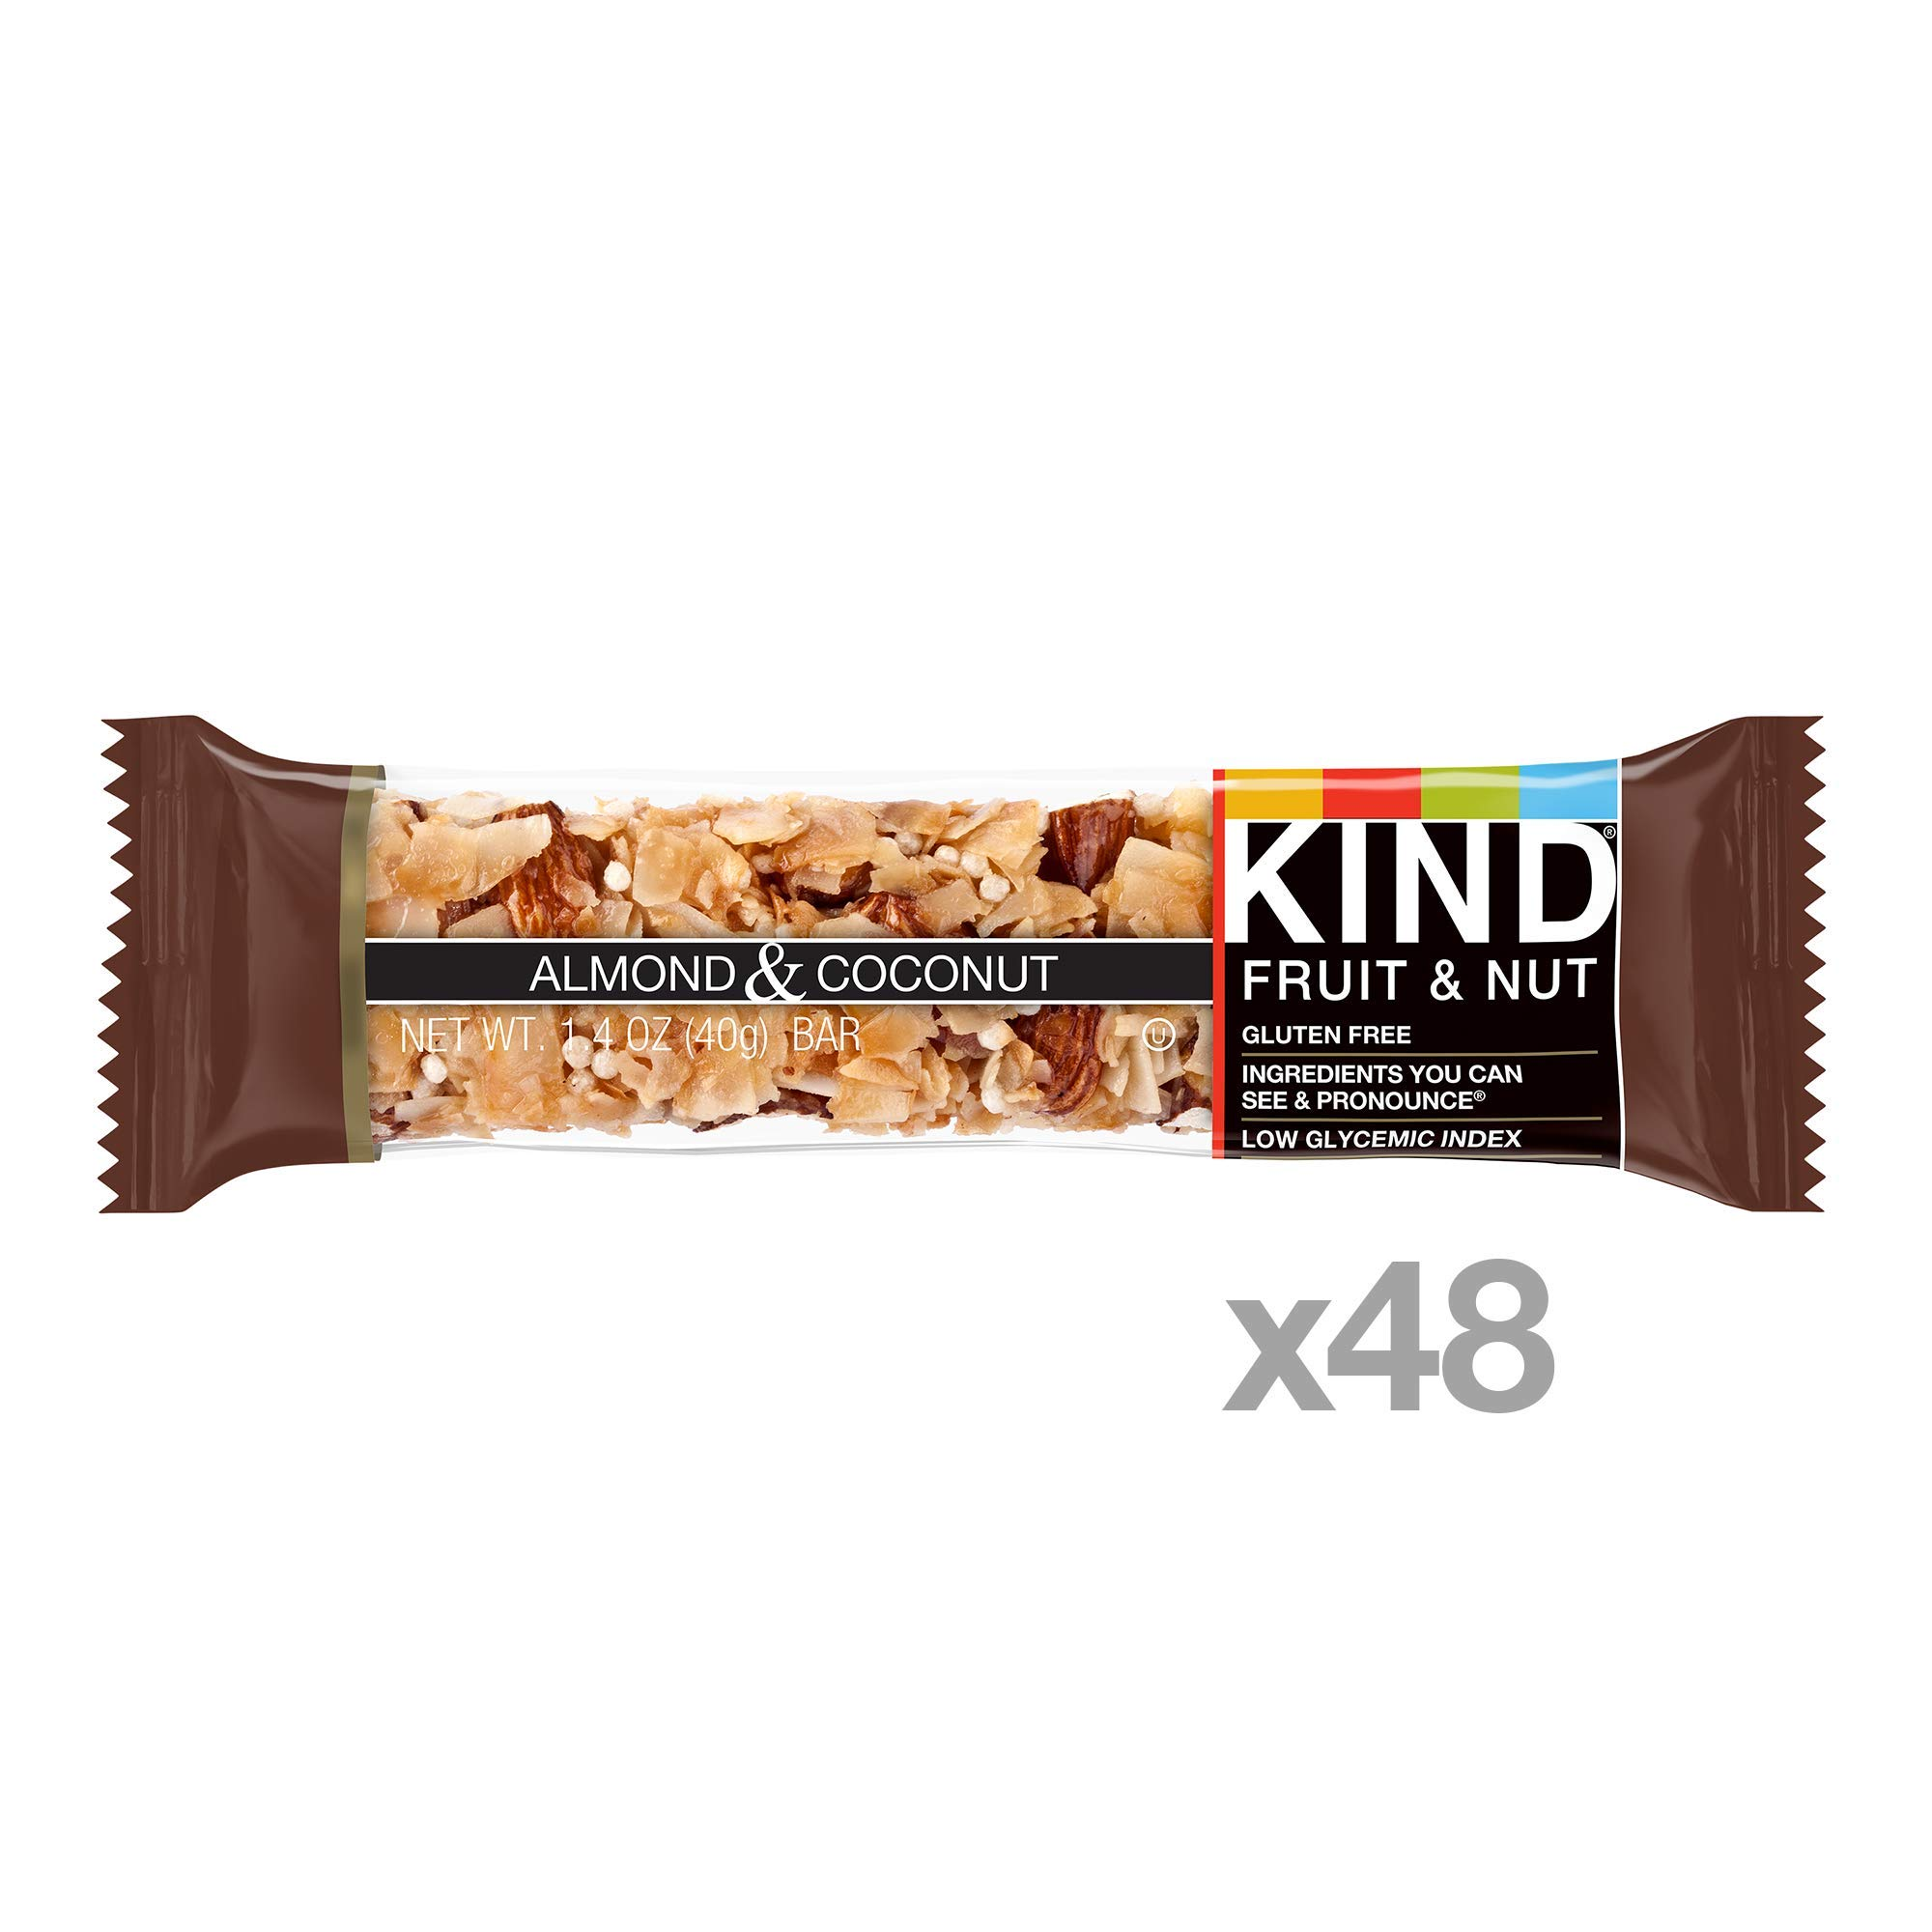 KIND Bars, Almond & Coconut, Gluten Free, Low Sugar, 1.4oz, 48 Count by KIND (Image #2)